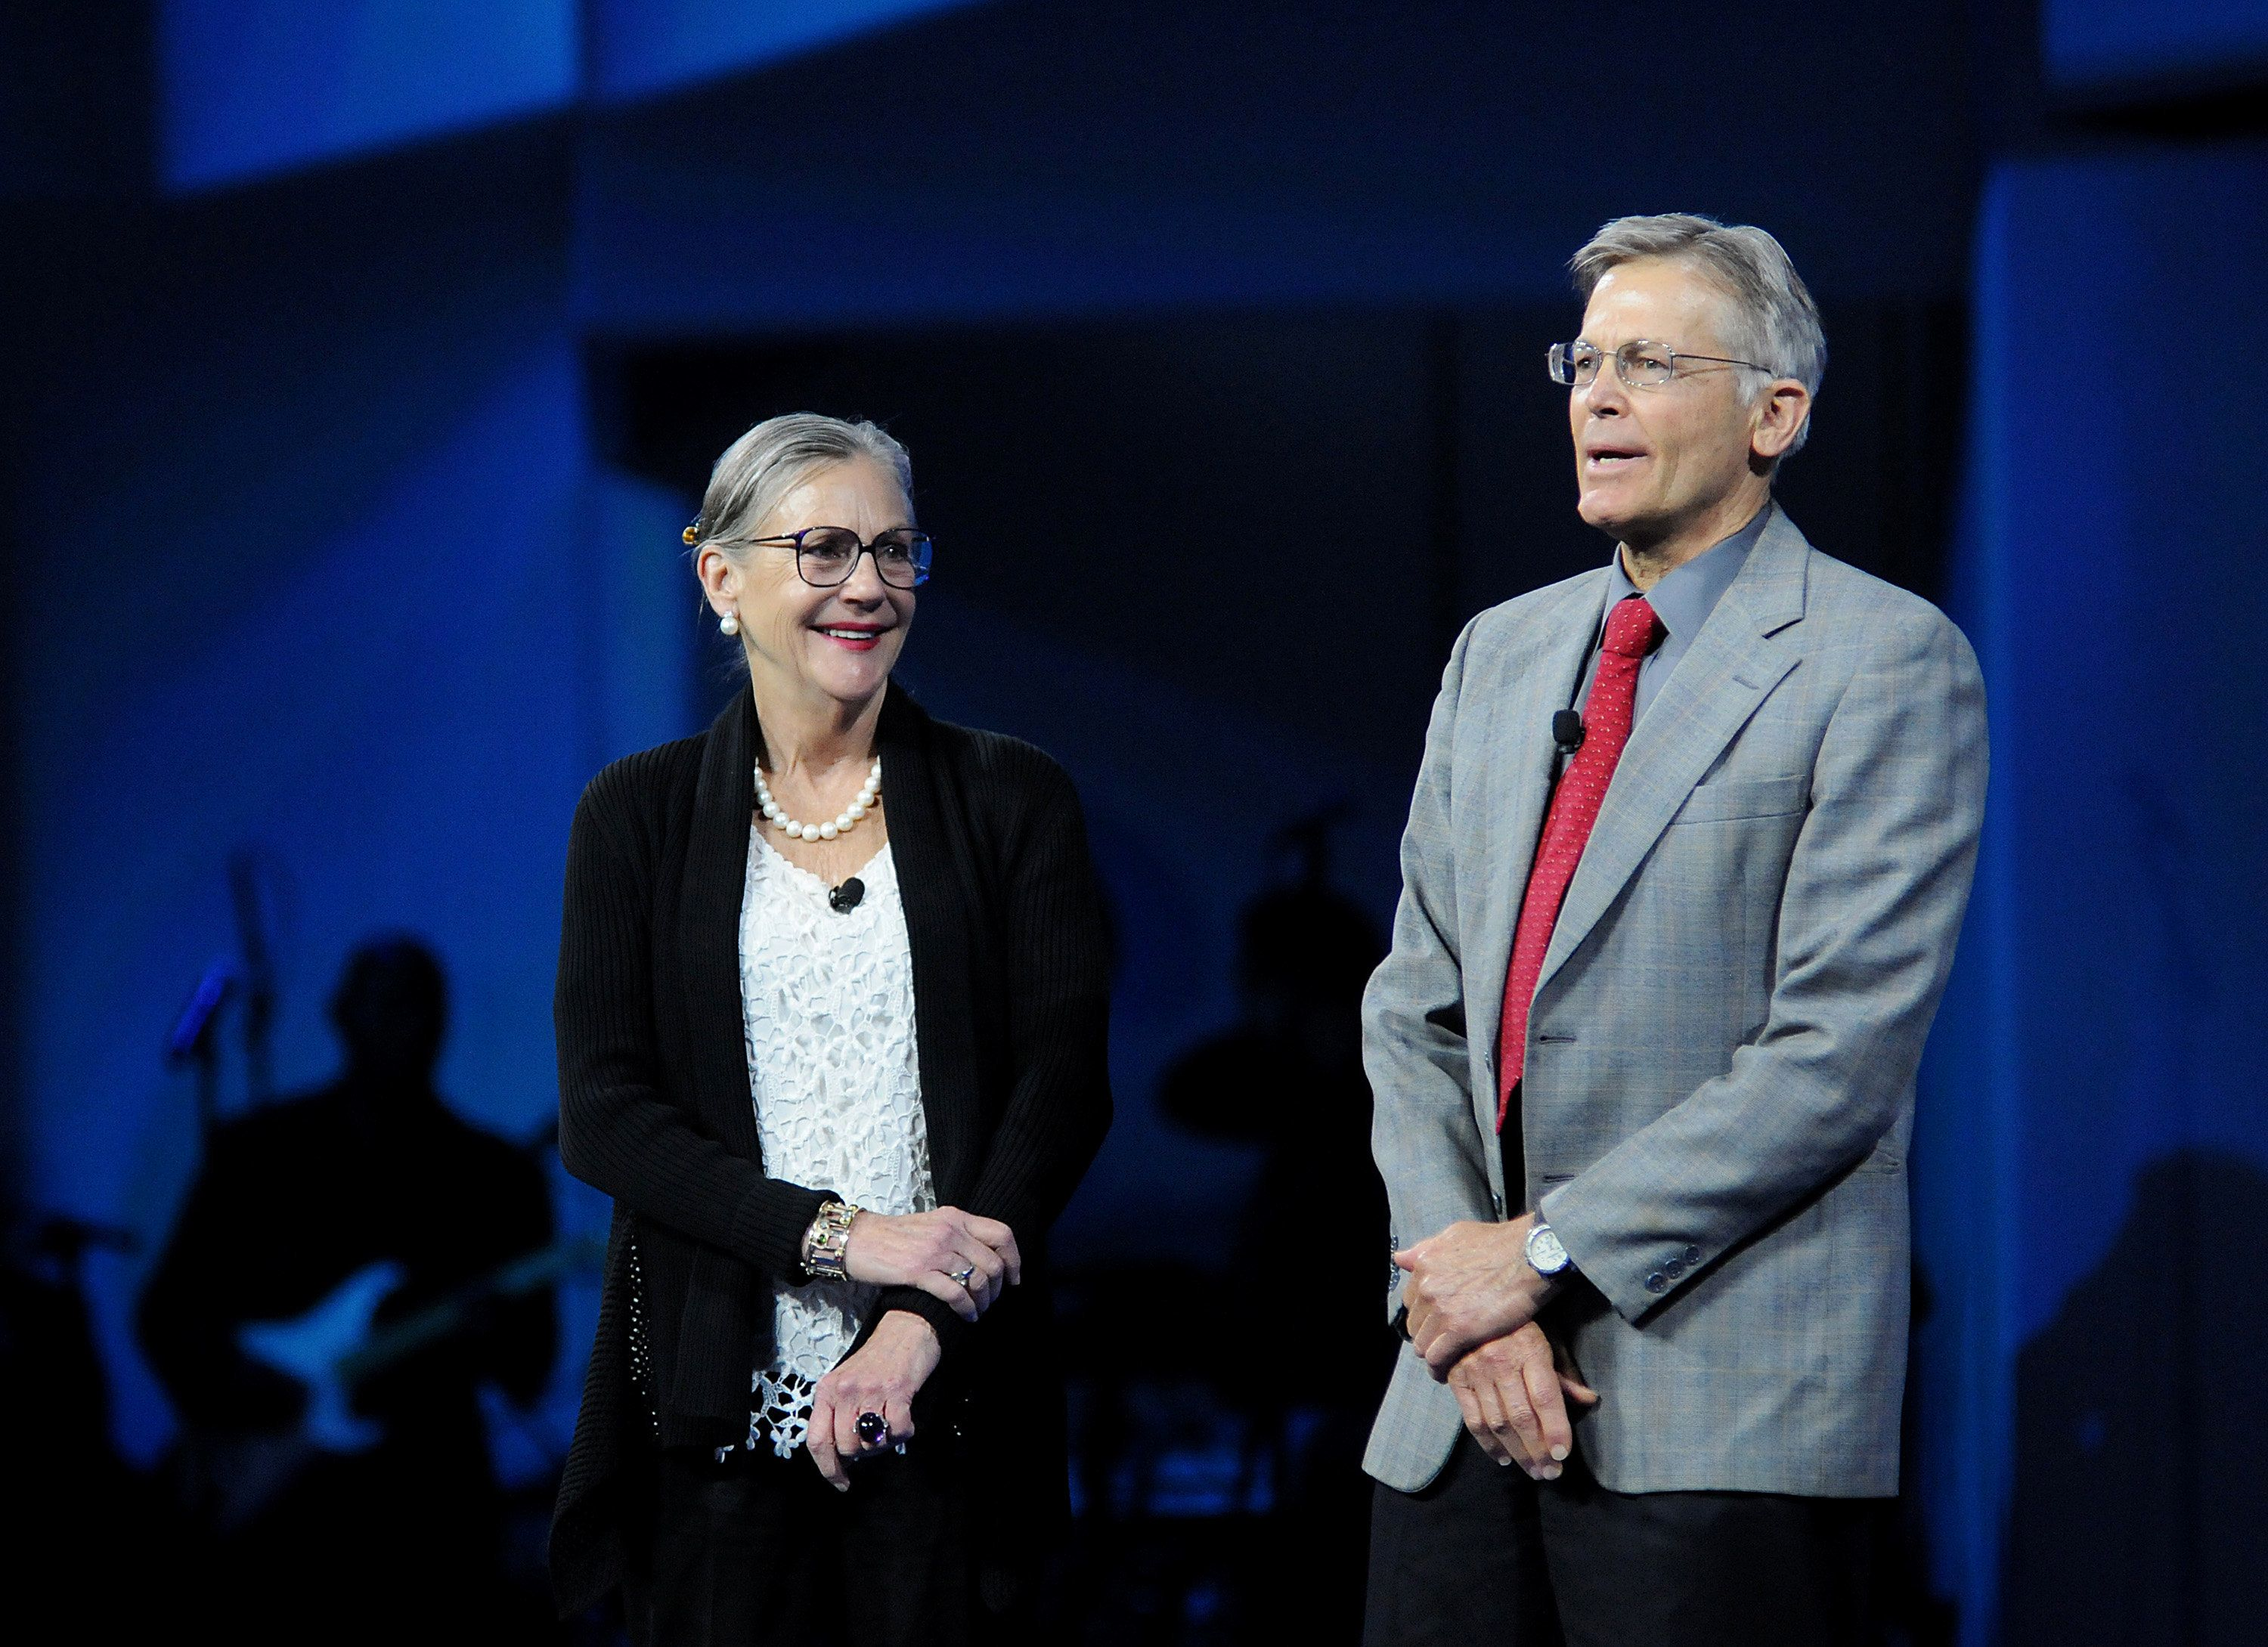 Walmart heirs Jim and Alice Walton donated $400,000 to Empower Louisiana PAC for school board elections in Louisian